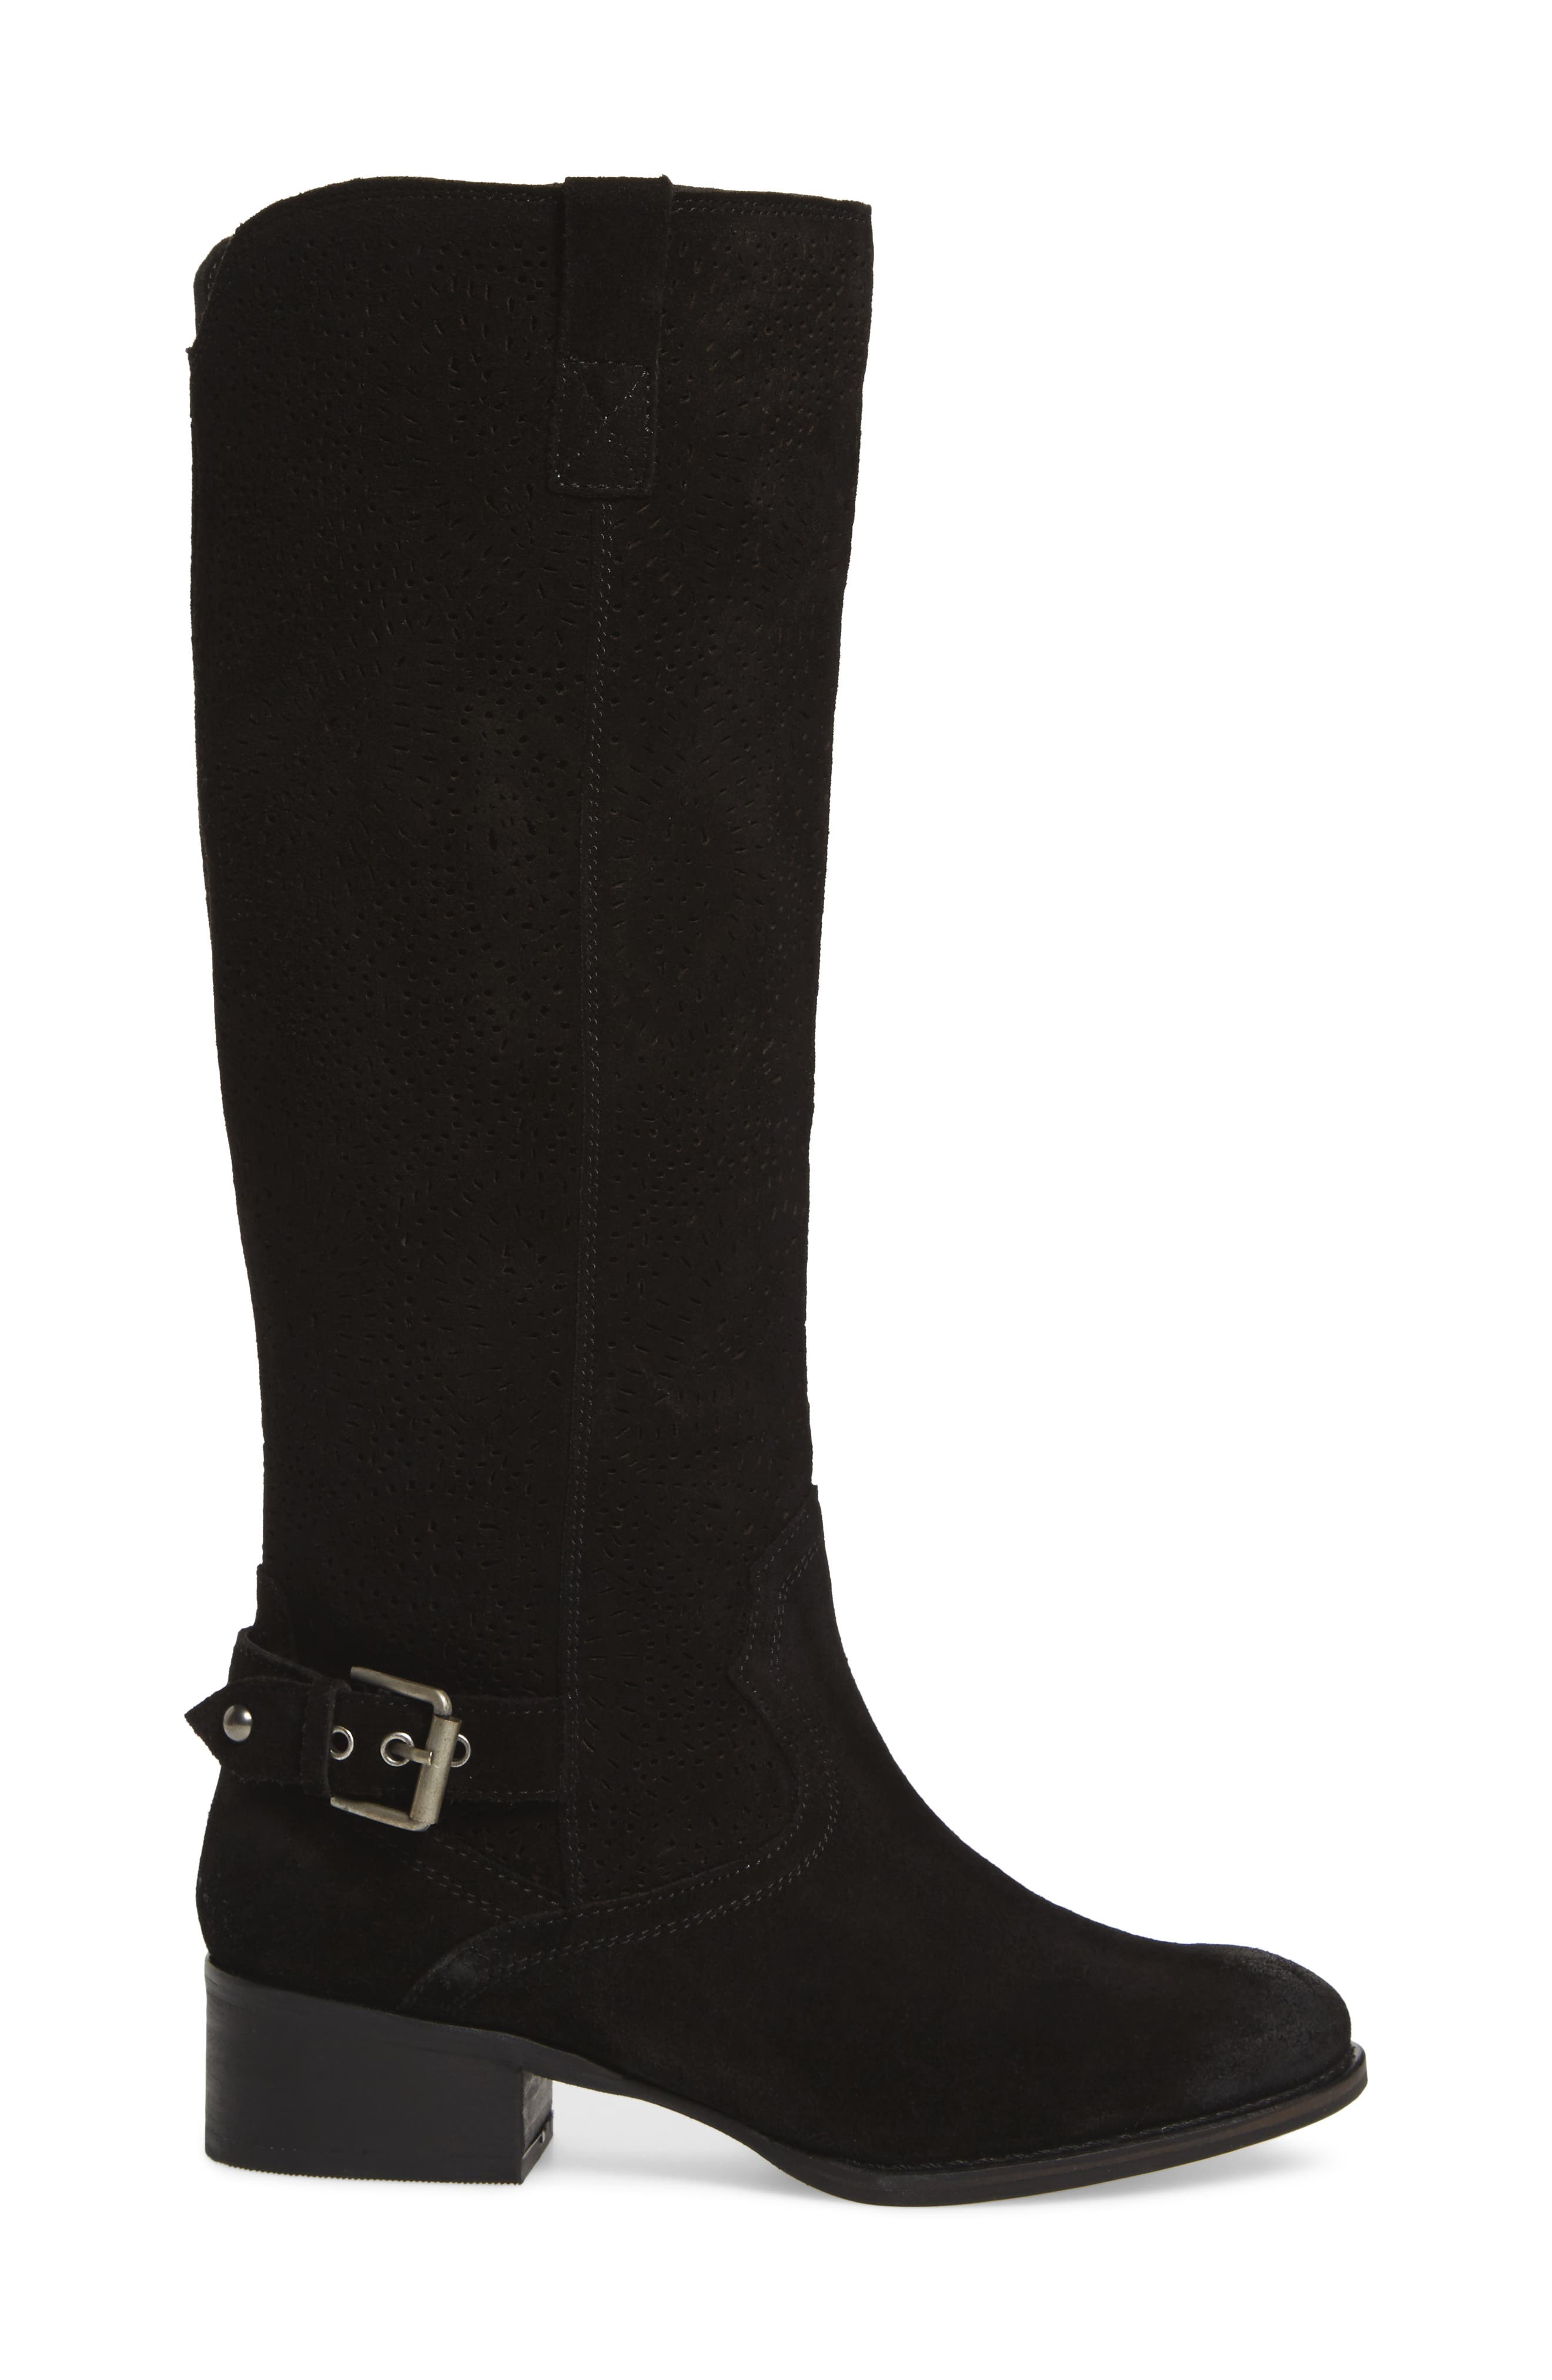 Ziba Tall Boot,                             Alternate thumbnail 3, color,                             Black Suede